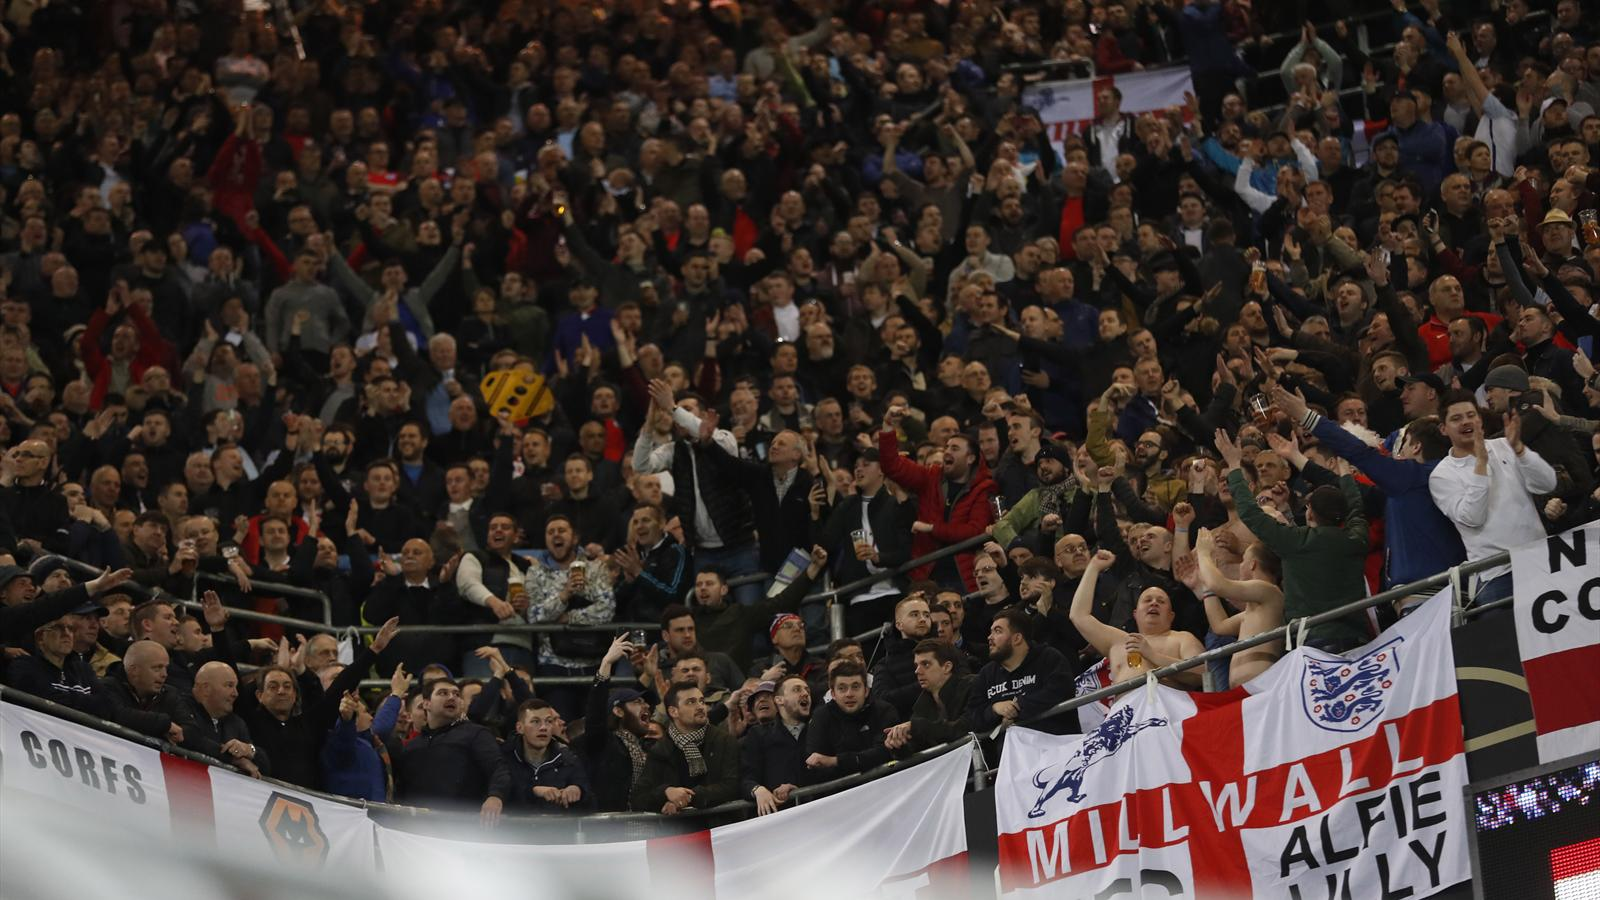 England fans 16th in list of nations requesting World Cup tickets, say